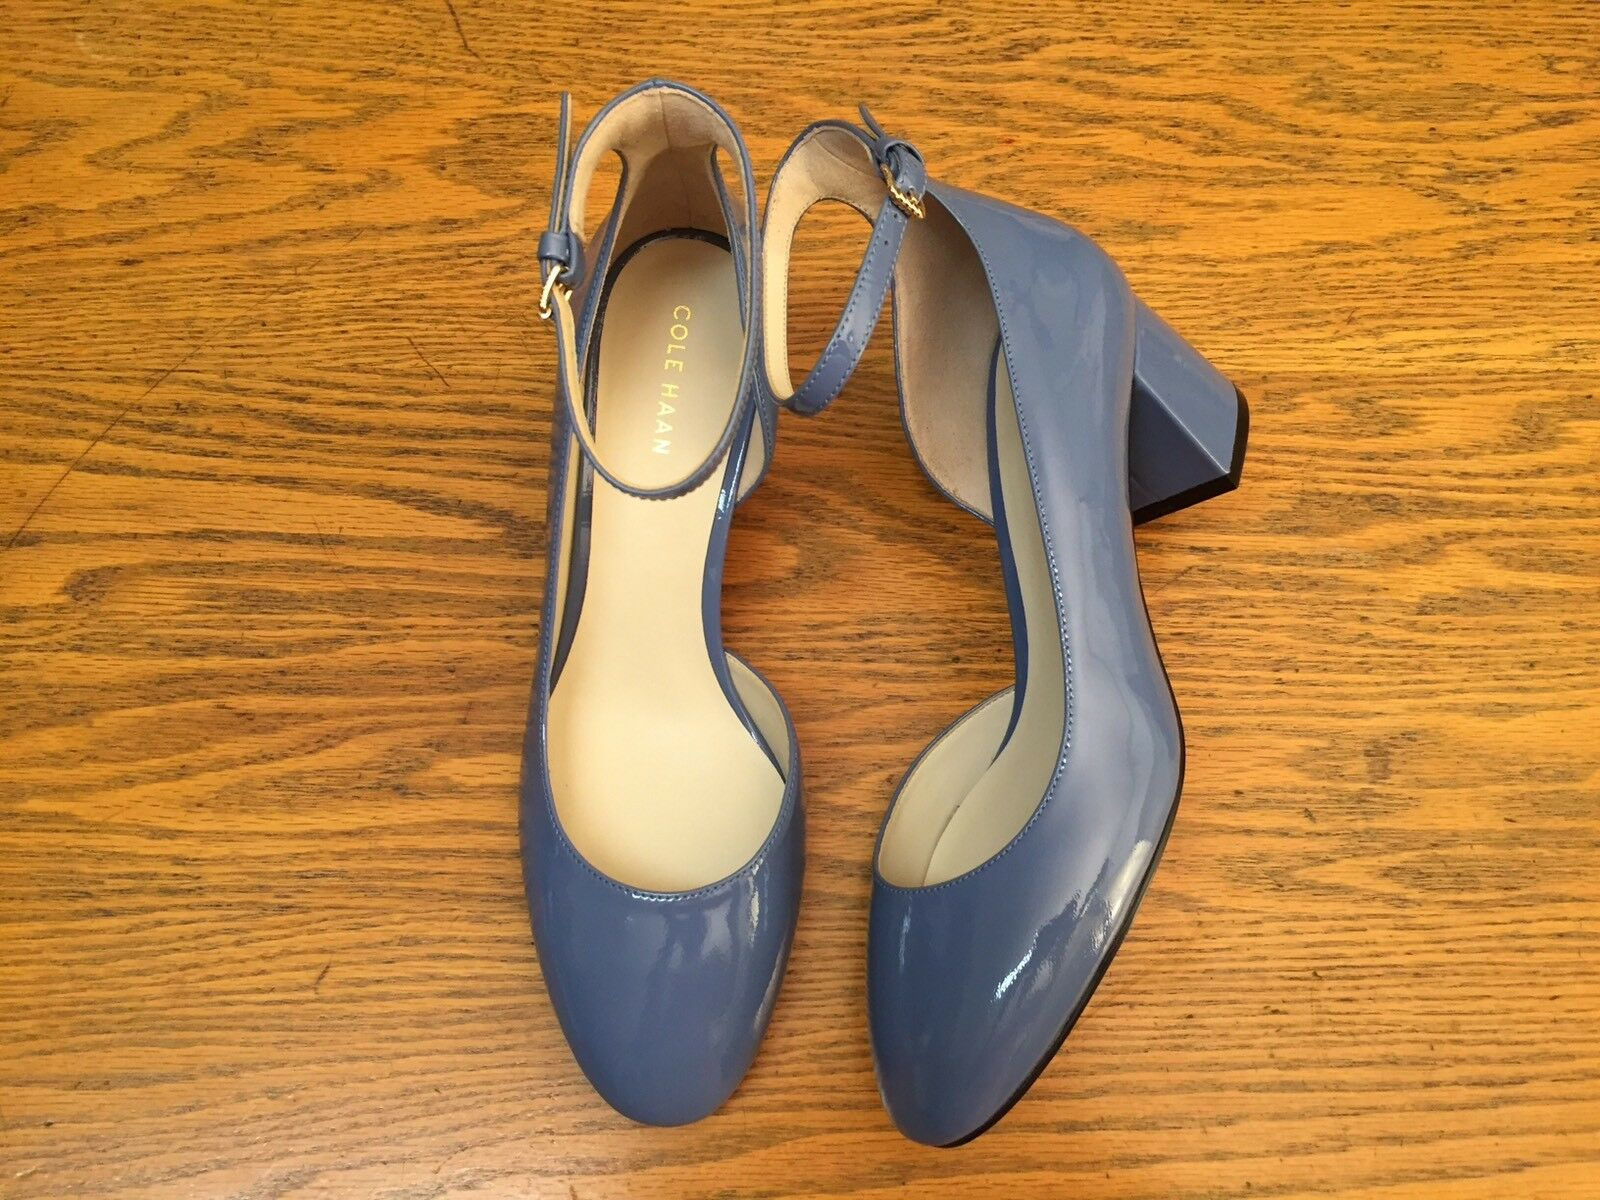 COLE HAAN PATENT LEATHER ANKLE STRAP HEEL Schuhe SIZE NEW SIZE Schuhe 6 4c08af